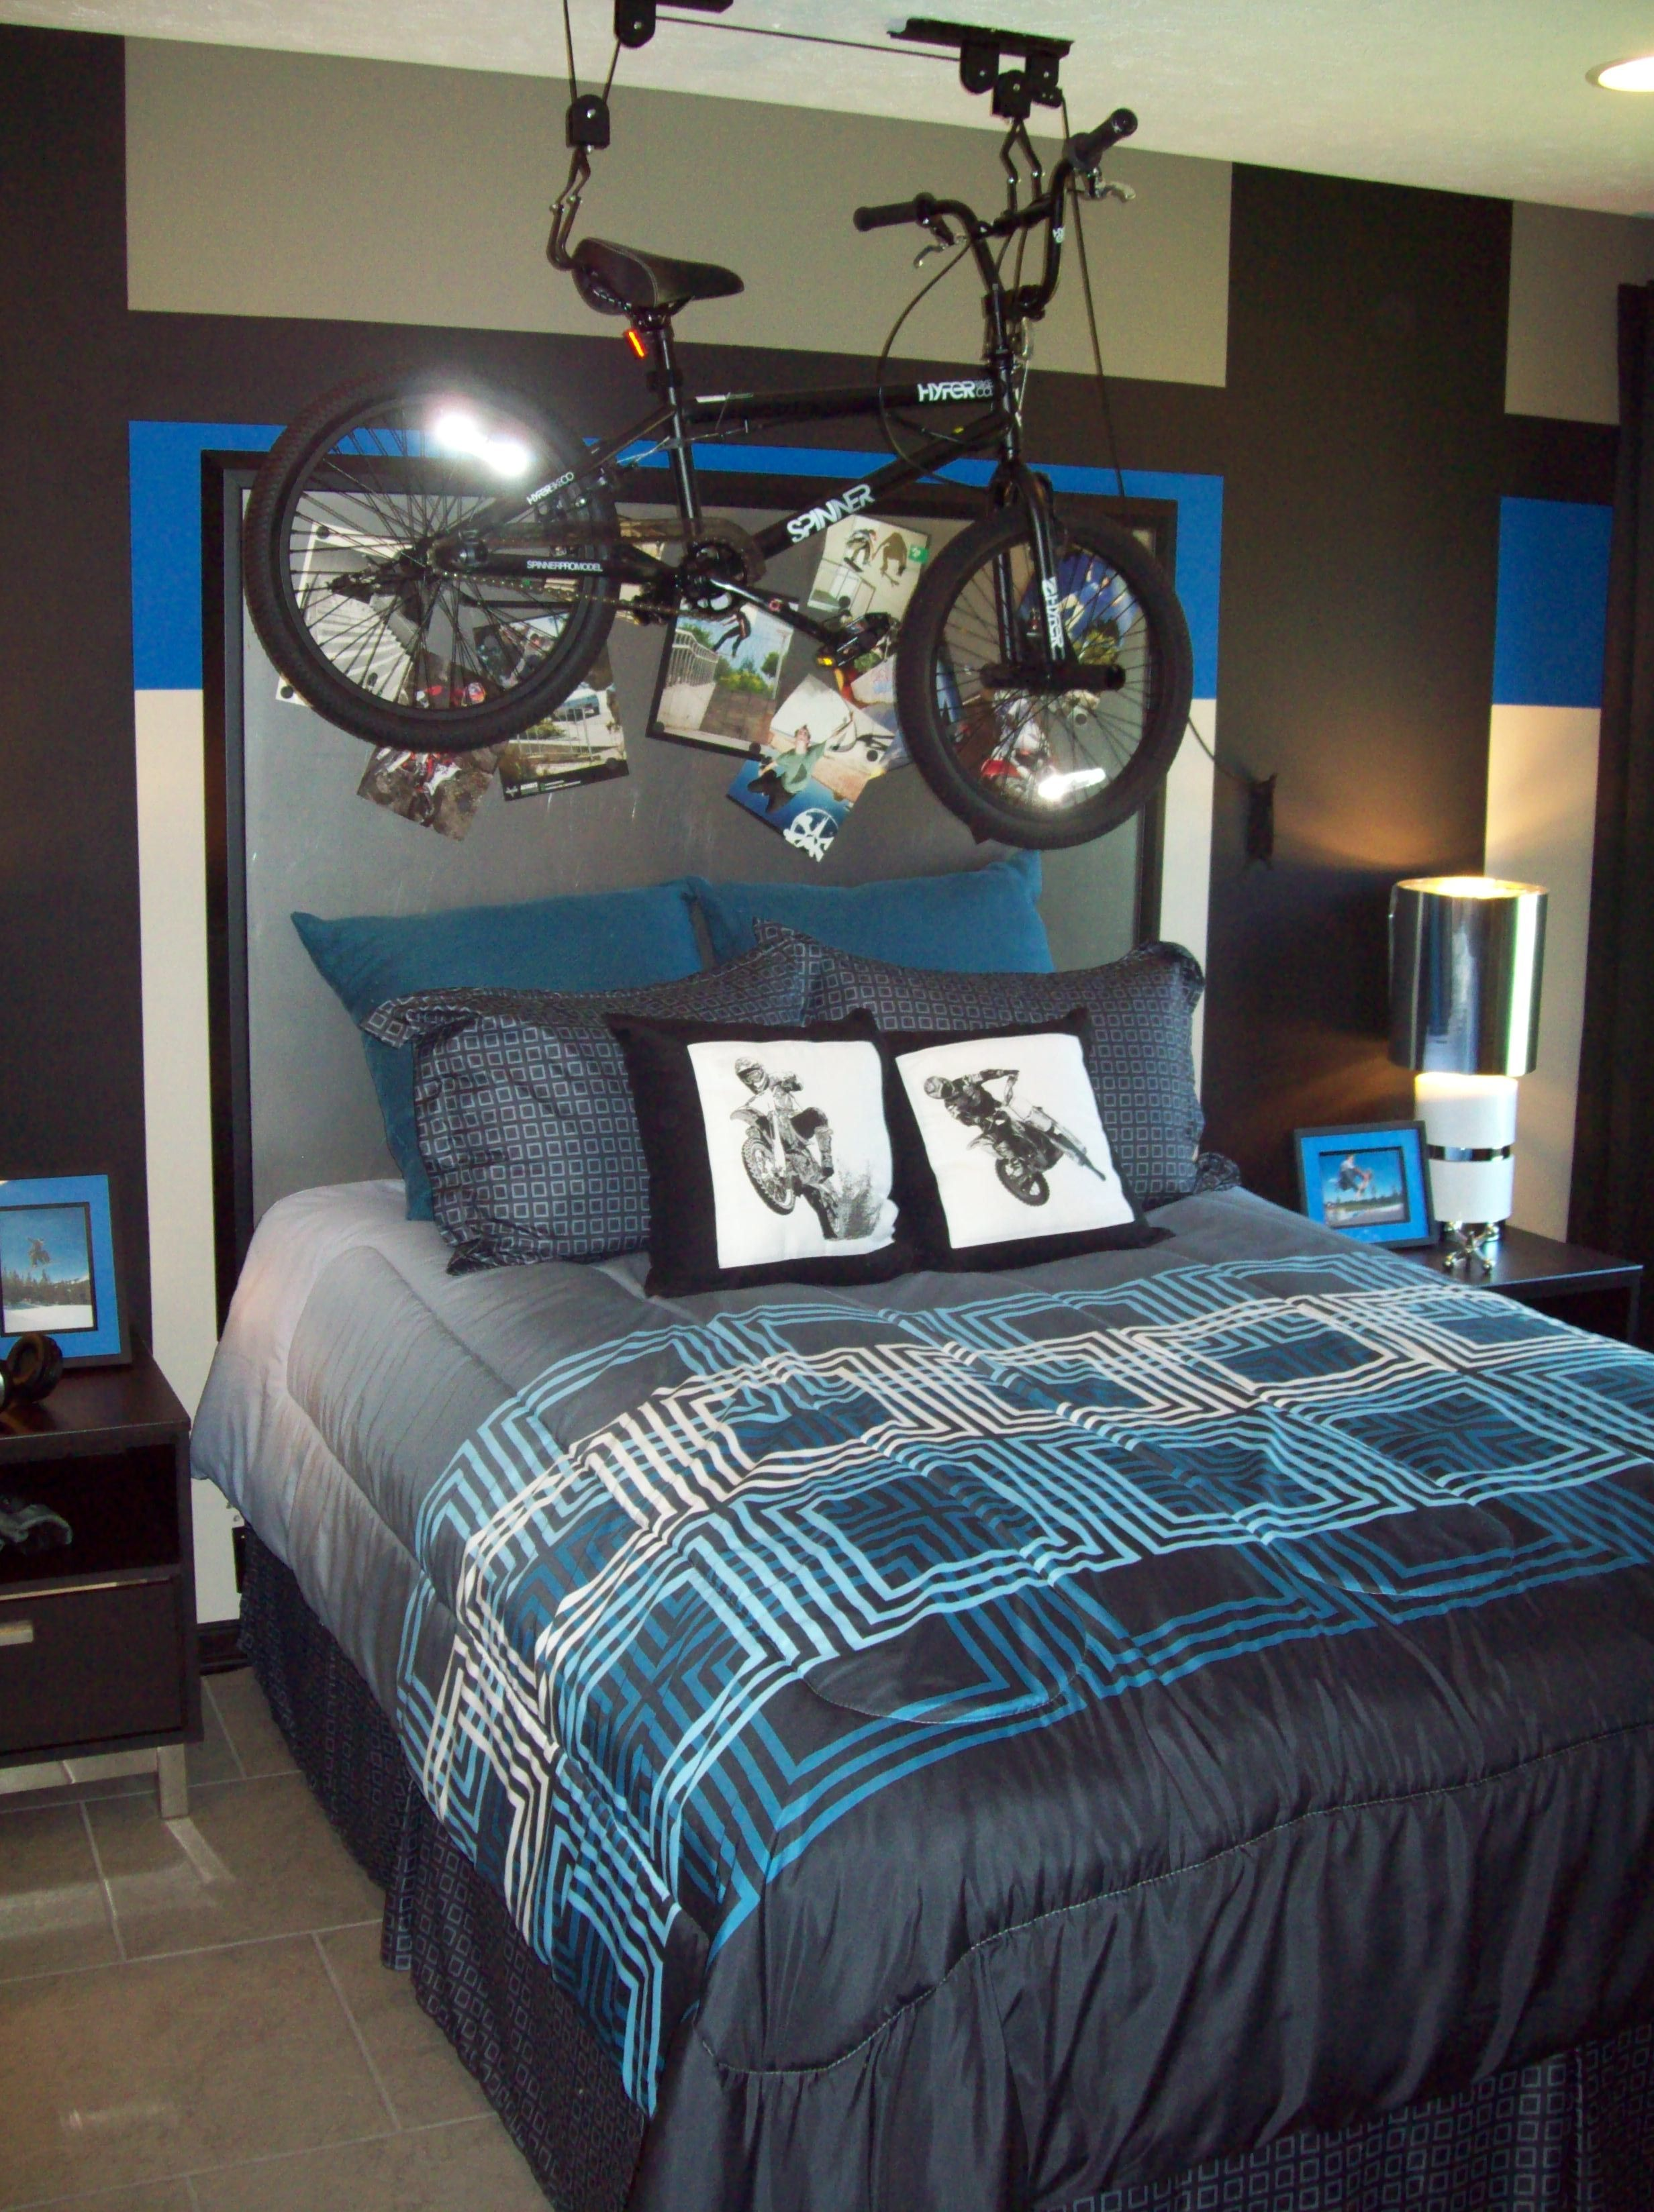 10x10 Room Ideas For Bedrooms: Pin On Kids' Room Inspiration